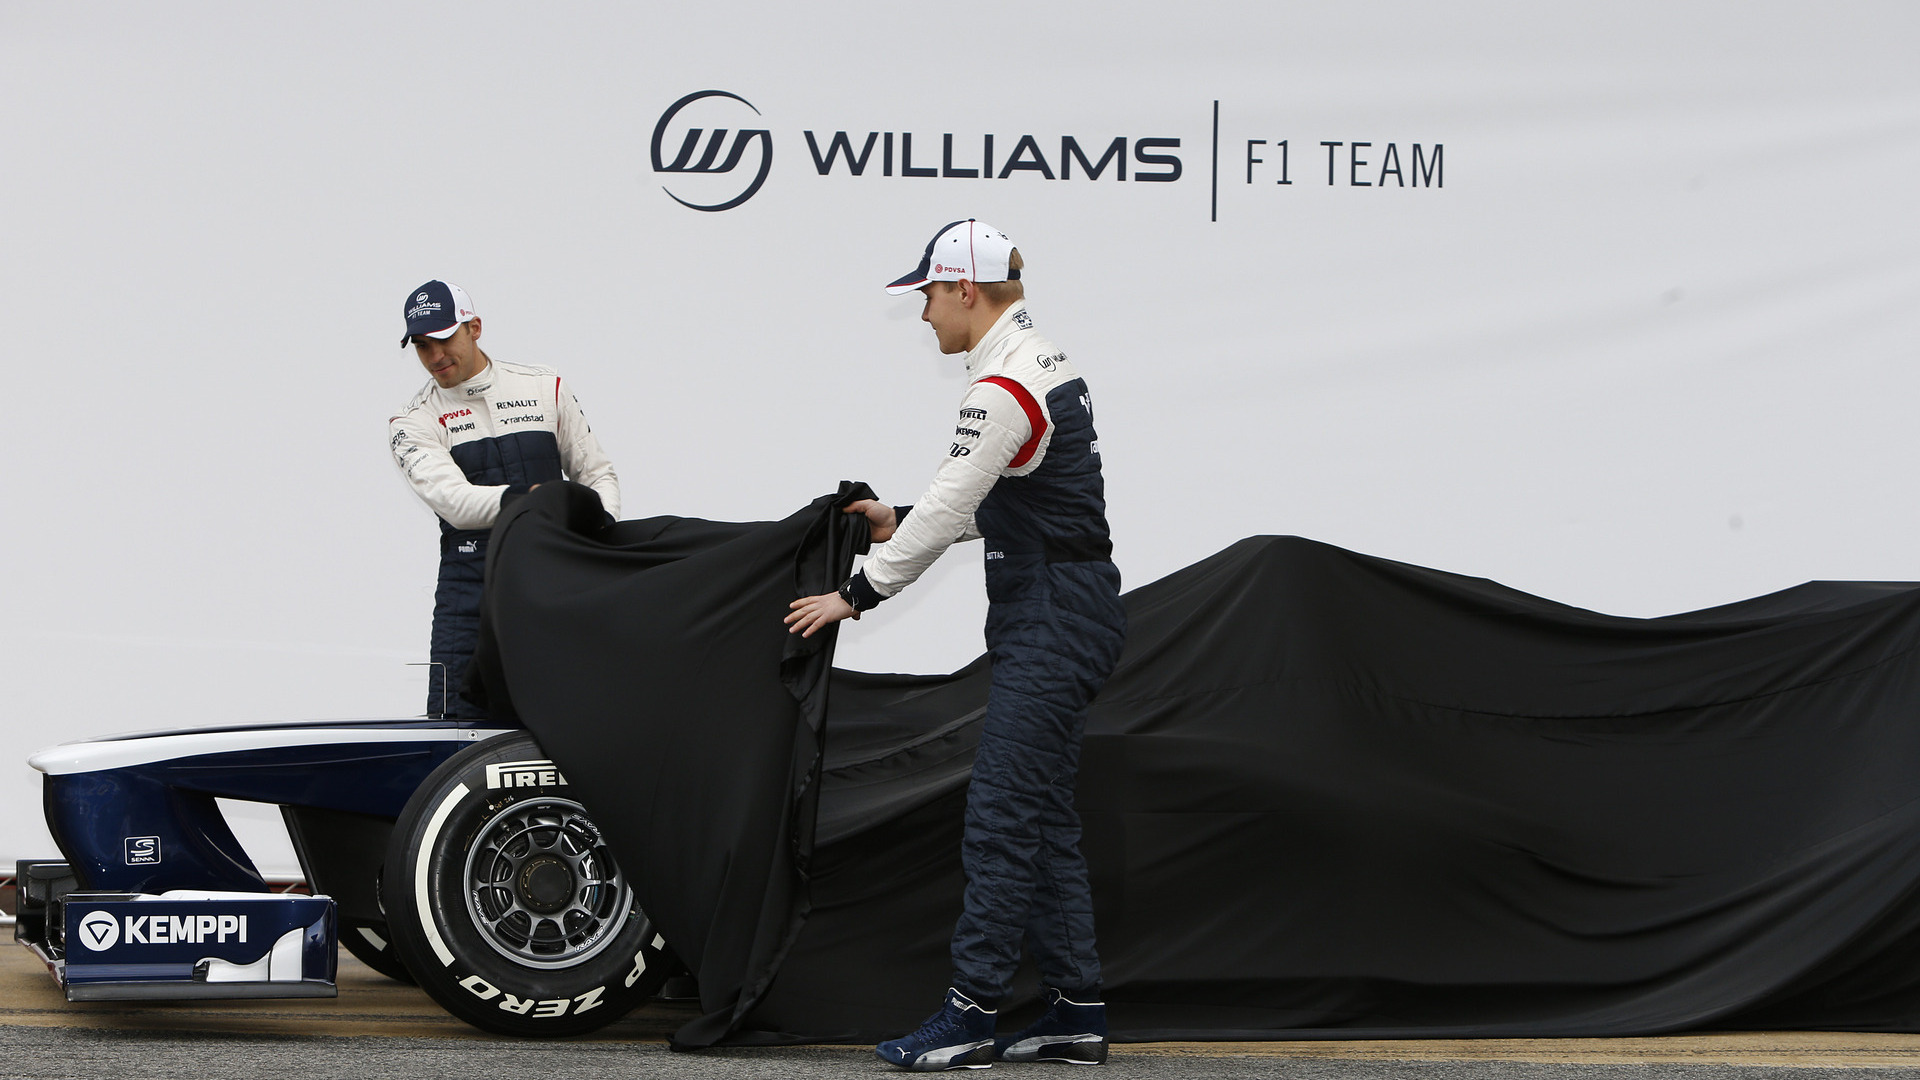 Williams F1 and Mercedes-Benz partnership announced